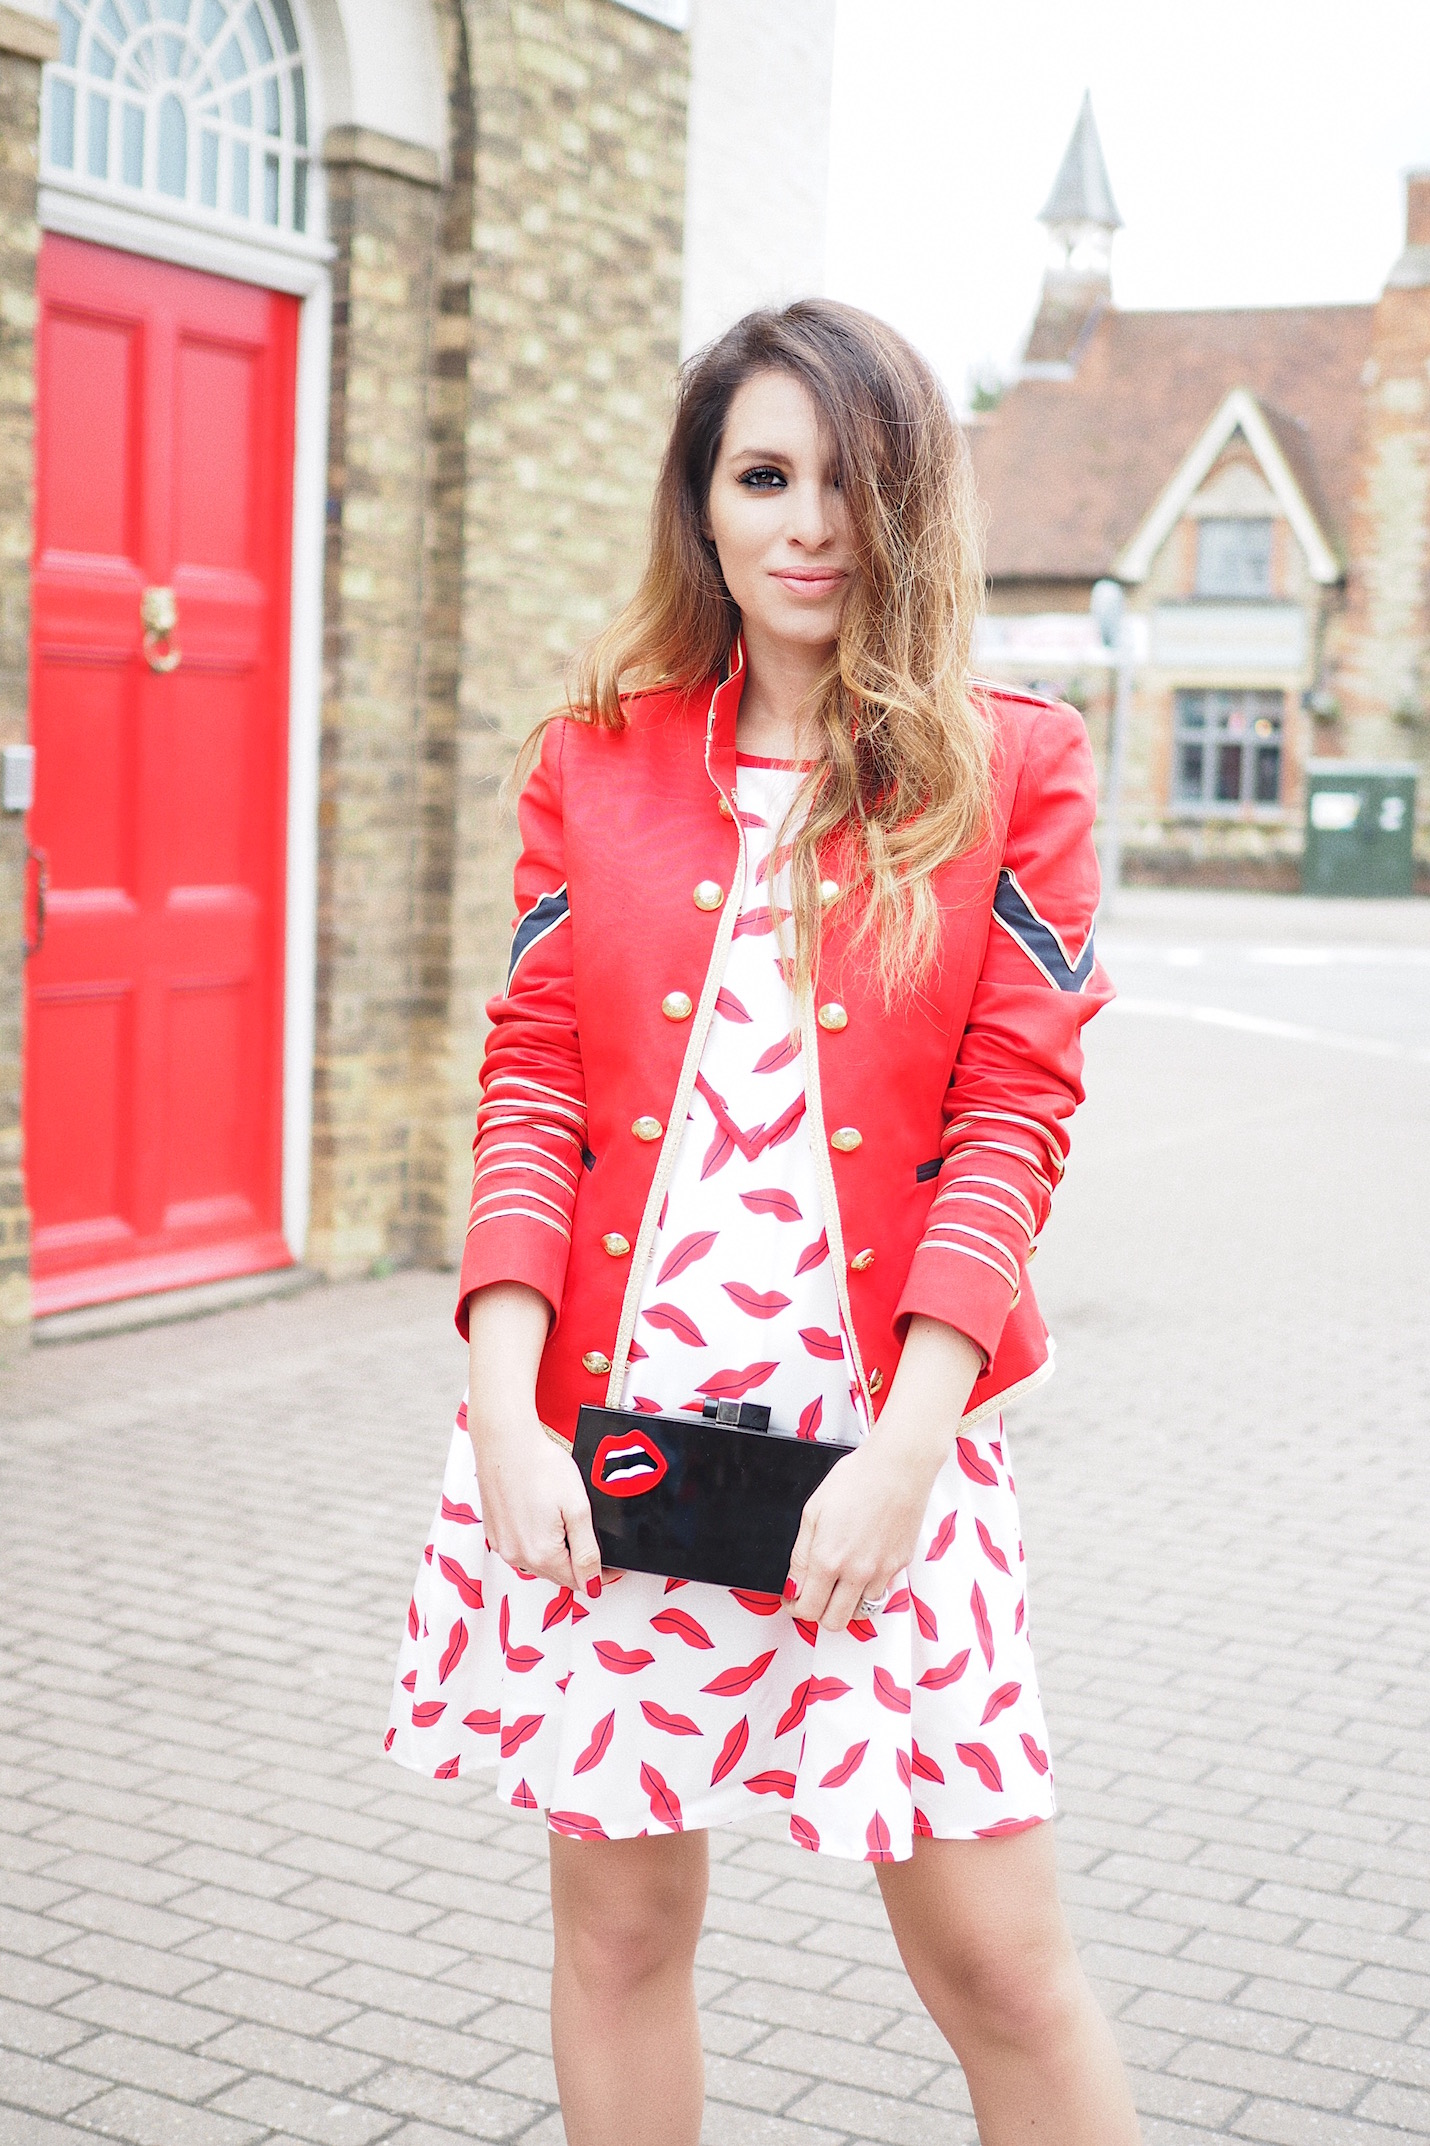 london street style fashion bloggers